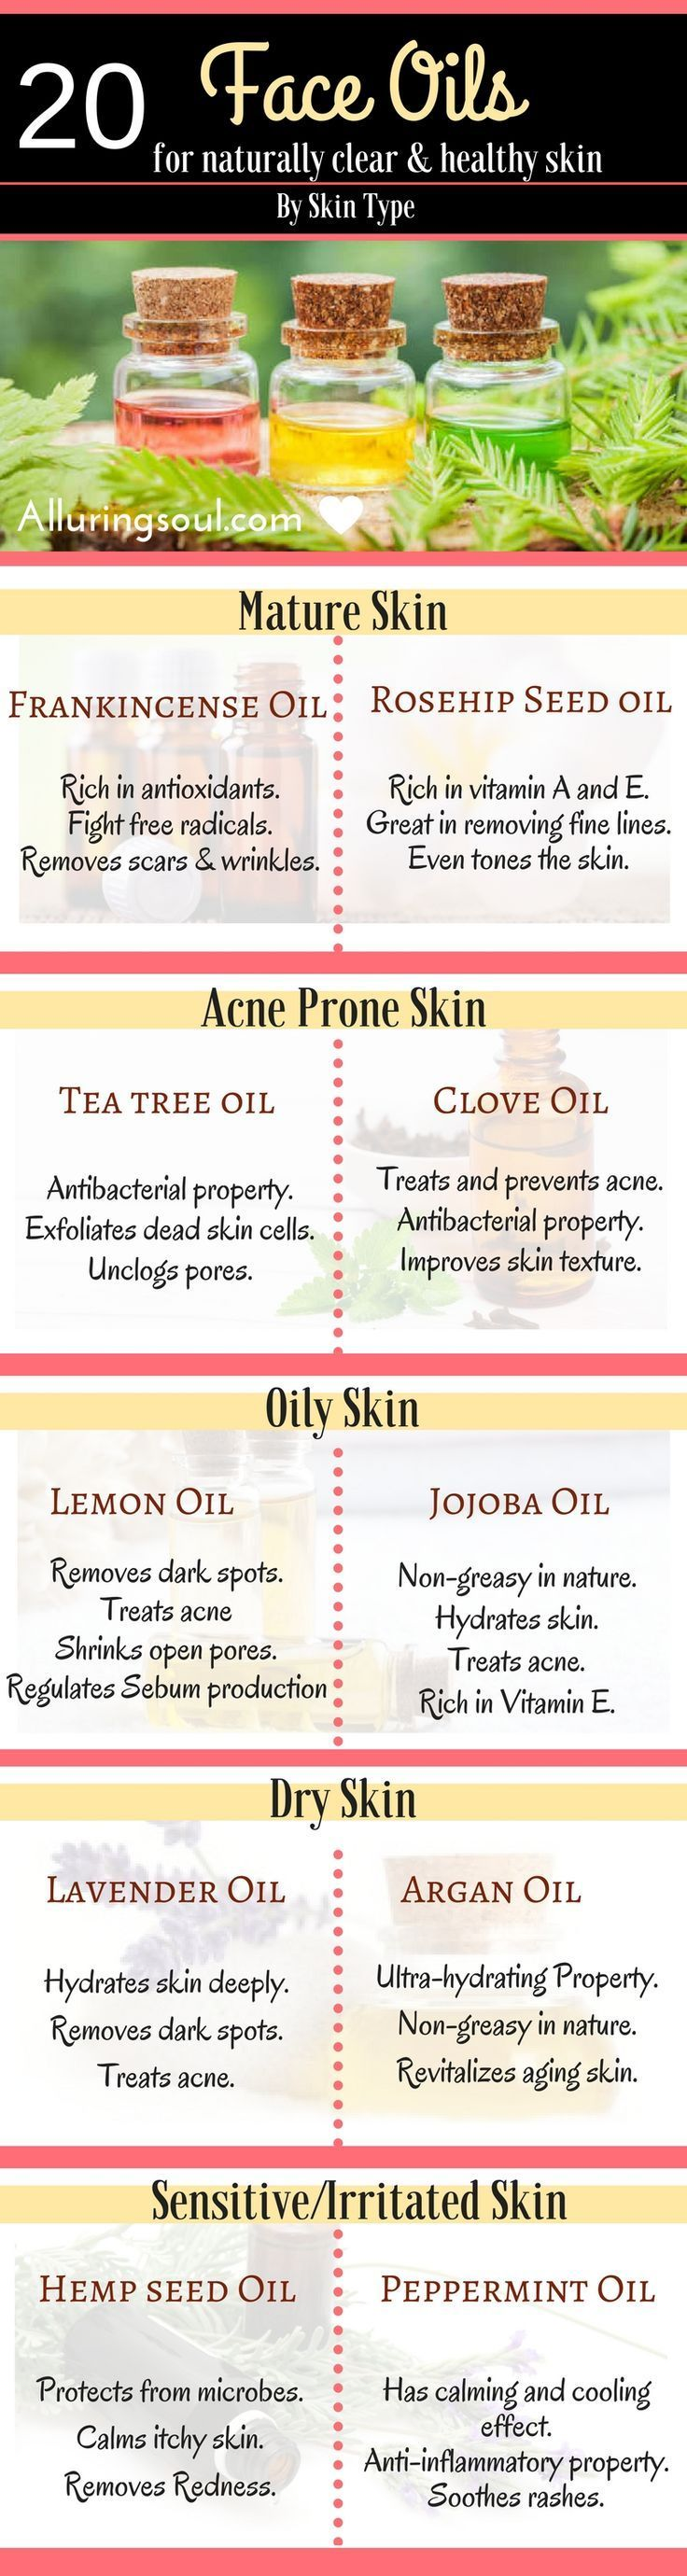 Face oils can do wonder on your skin. Whether you are suffering from acne or dry skin or oily skin or aging skin, face oil is the best remedy to make skin flawless, hydrated and glowing. Tea tree oil, rosehip oil, hemp seed oil , lavender oil, argan oil a